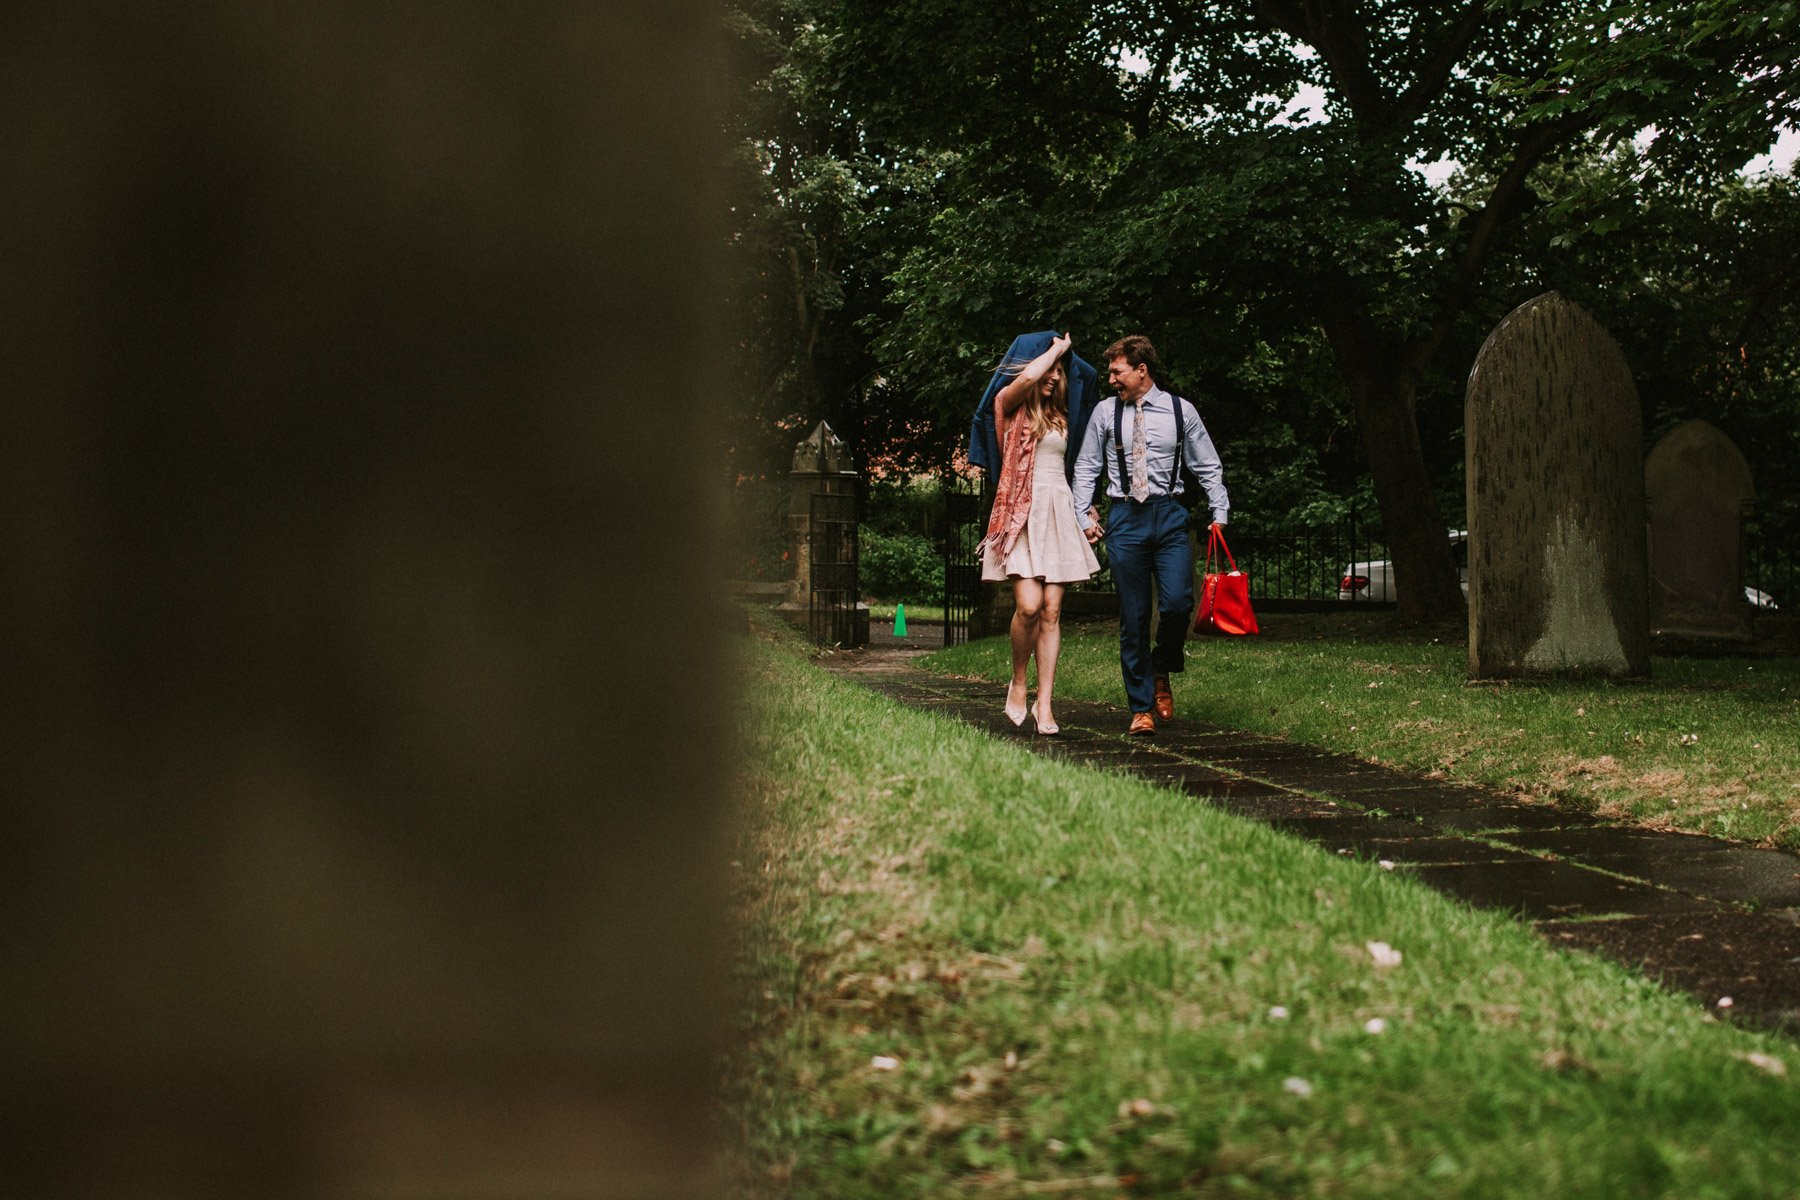 summerhill bowling club wedding - wedding guests running in the rain